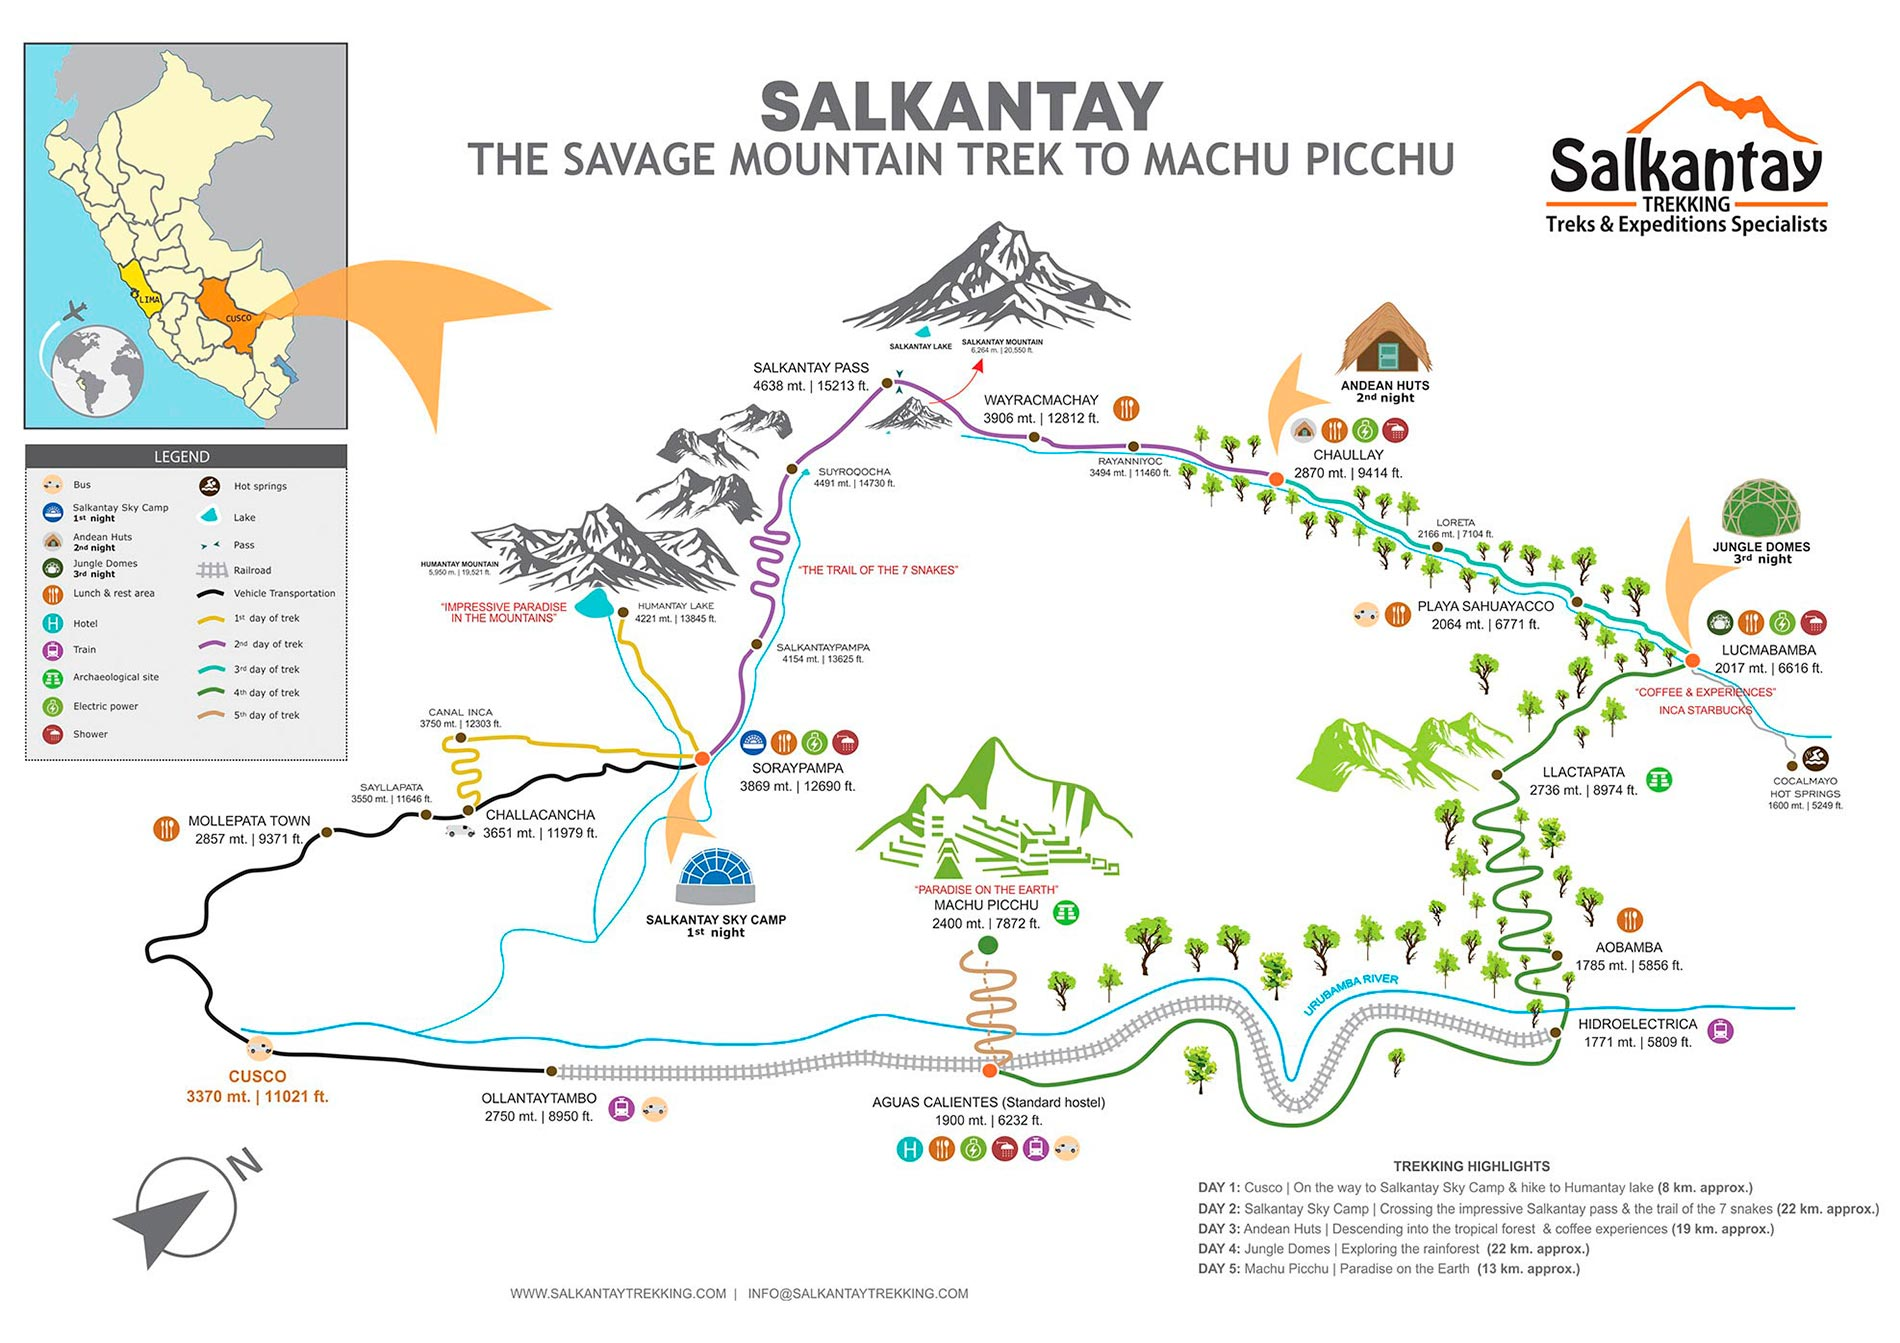 salkantay trek classic map and itinerary